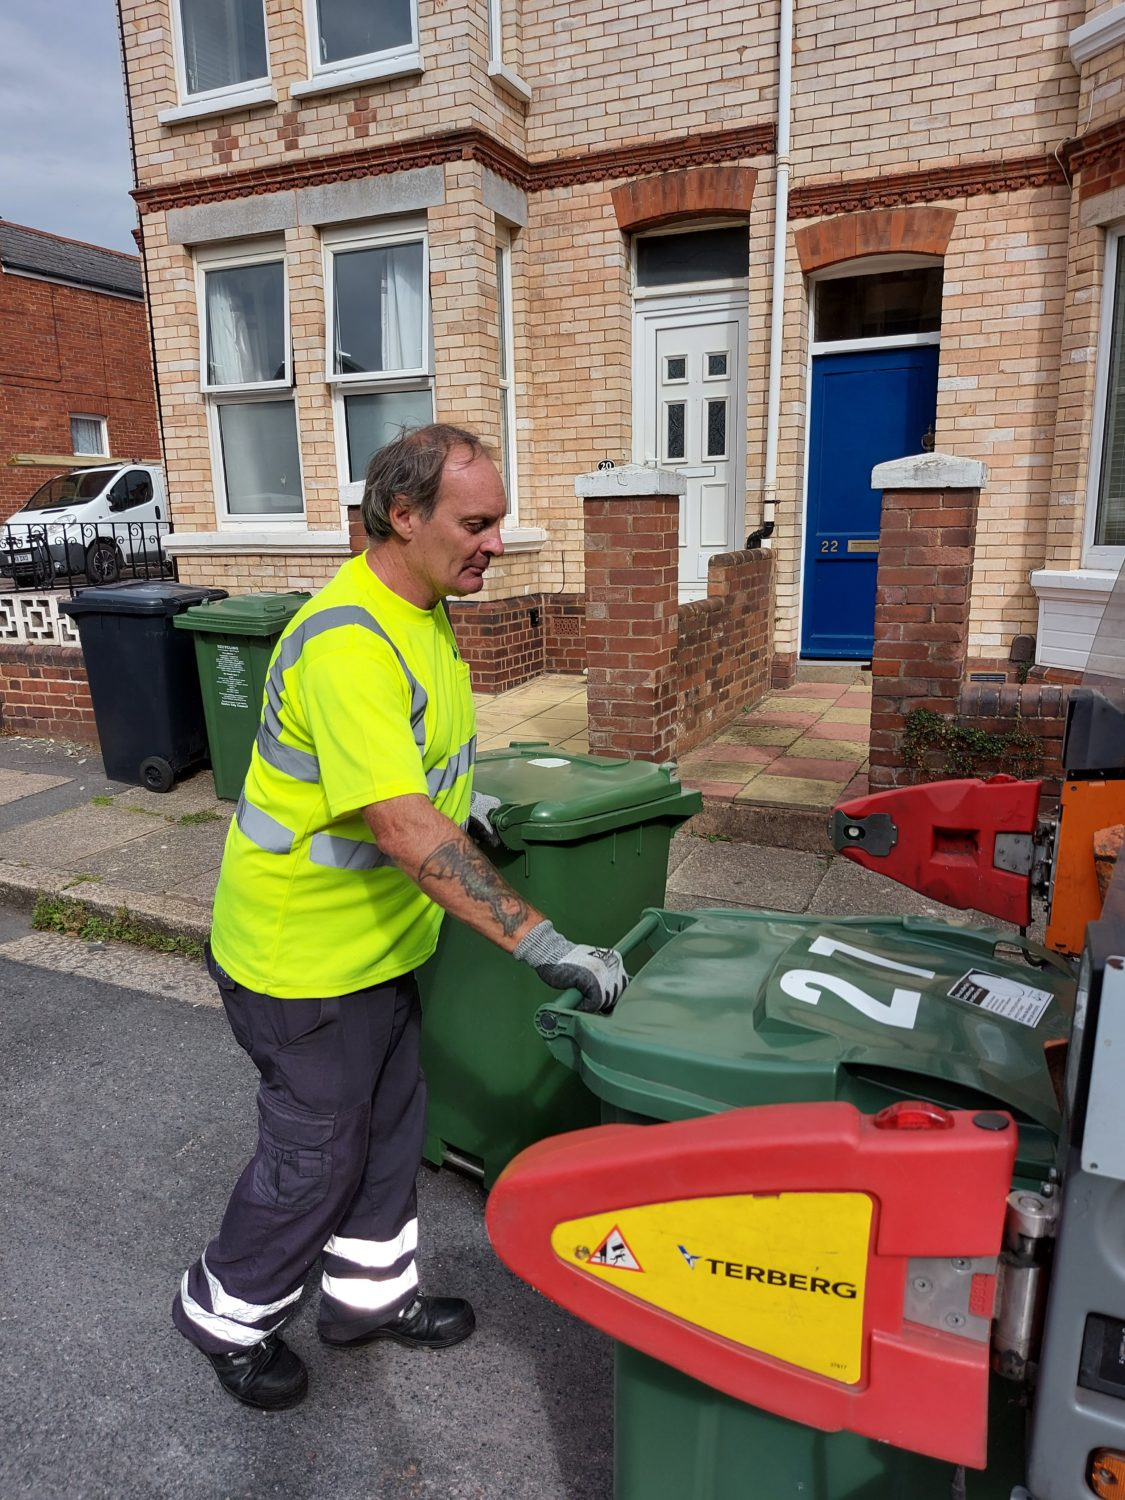 Waste operative loading recycling bins